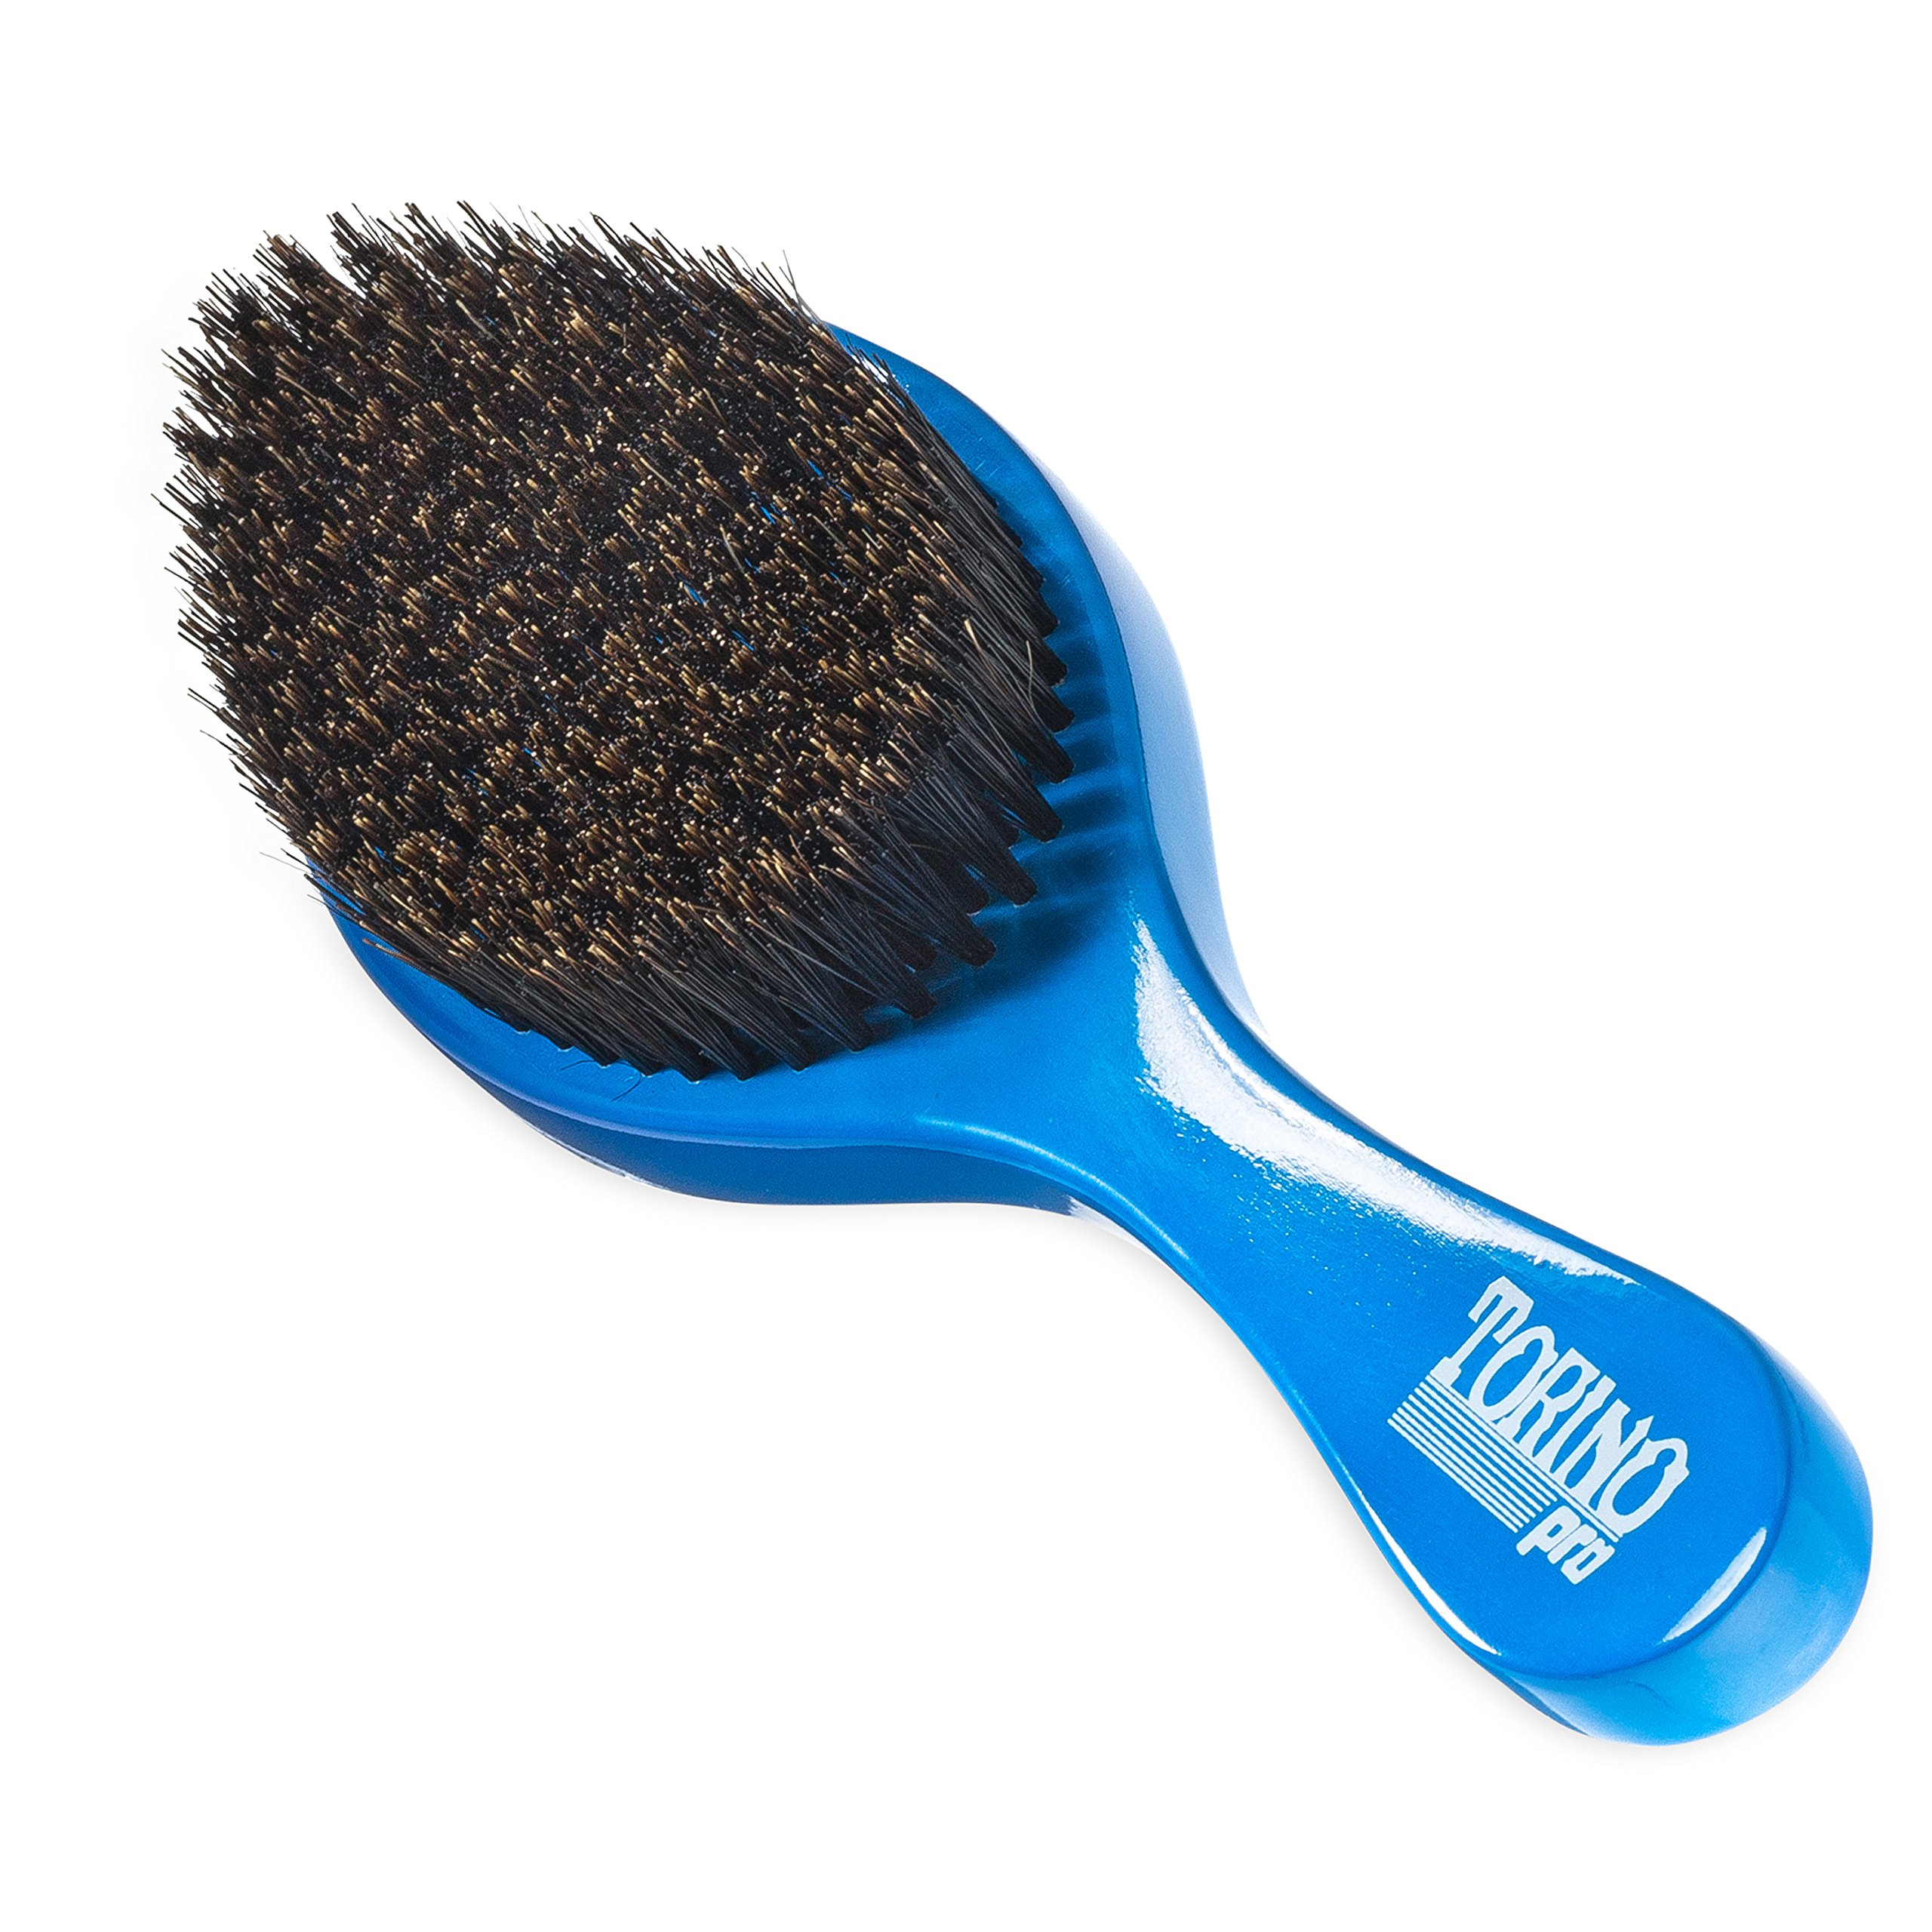 Torino Pro Wave brush #350 by Brush King - Medium Curve Waves Brush - Made with 100% Boar Bristles -True Texture Medium - All Purpose 360 Waves Brush by TORINO PRO WAVE BRUSHES BY BRUSH KING